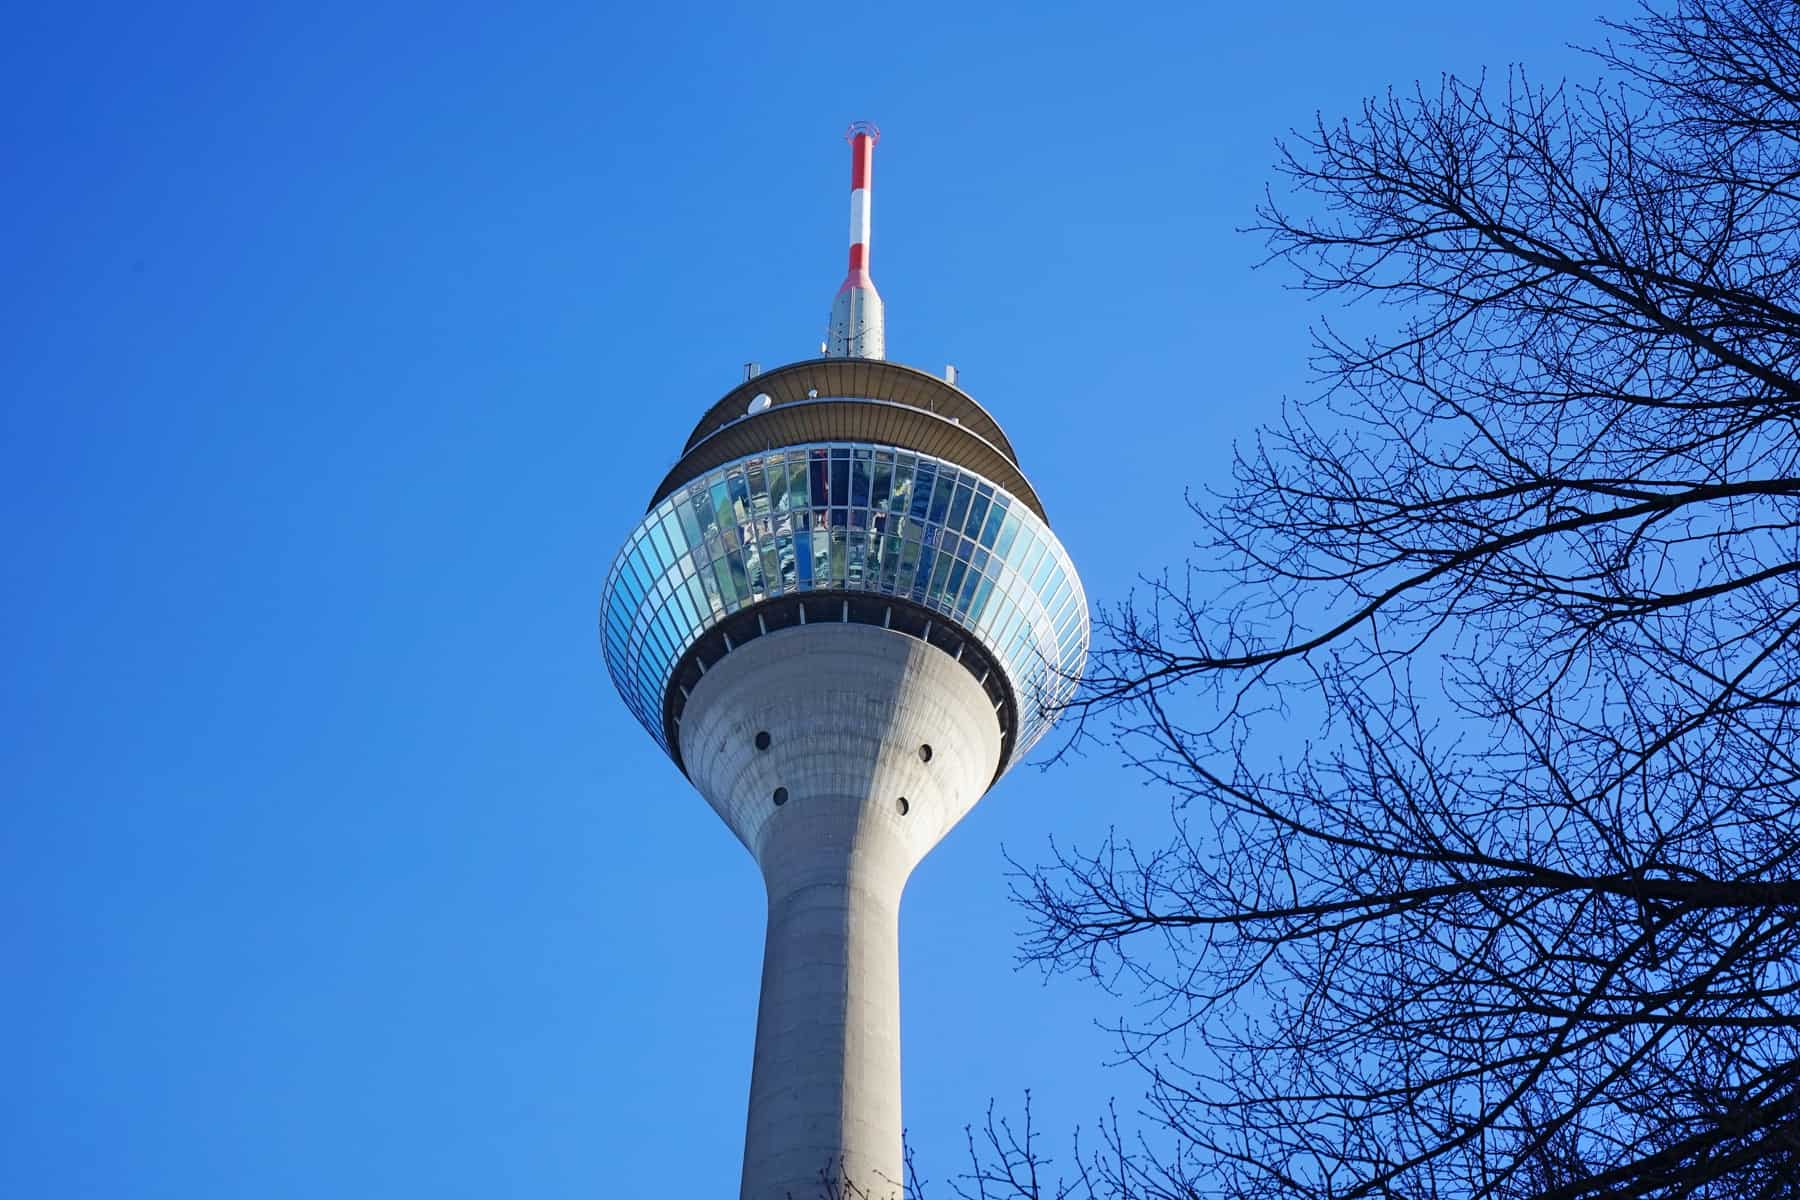 FAMILY DESTINATION RHINE TOWER DÜSSELDORF